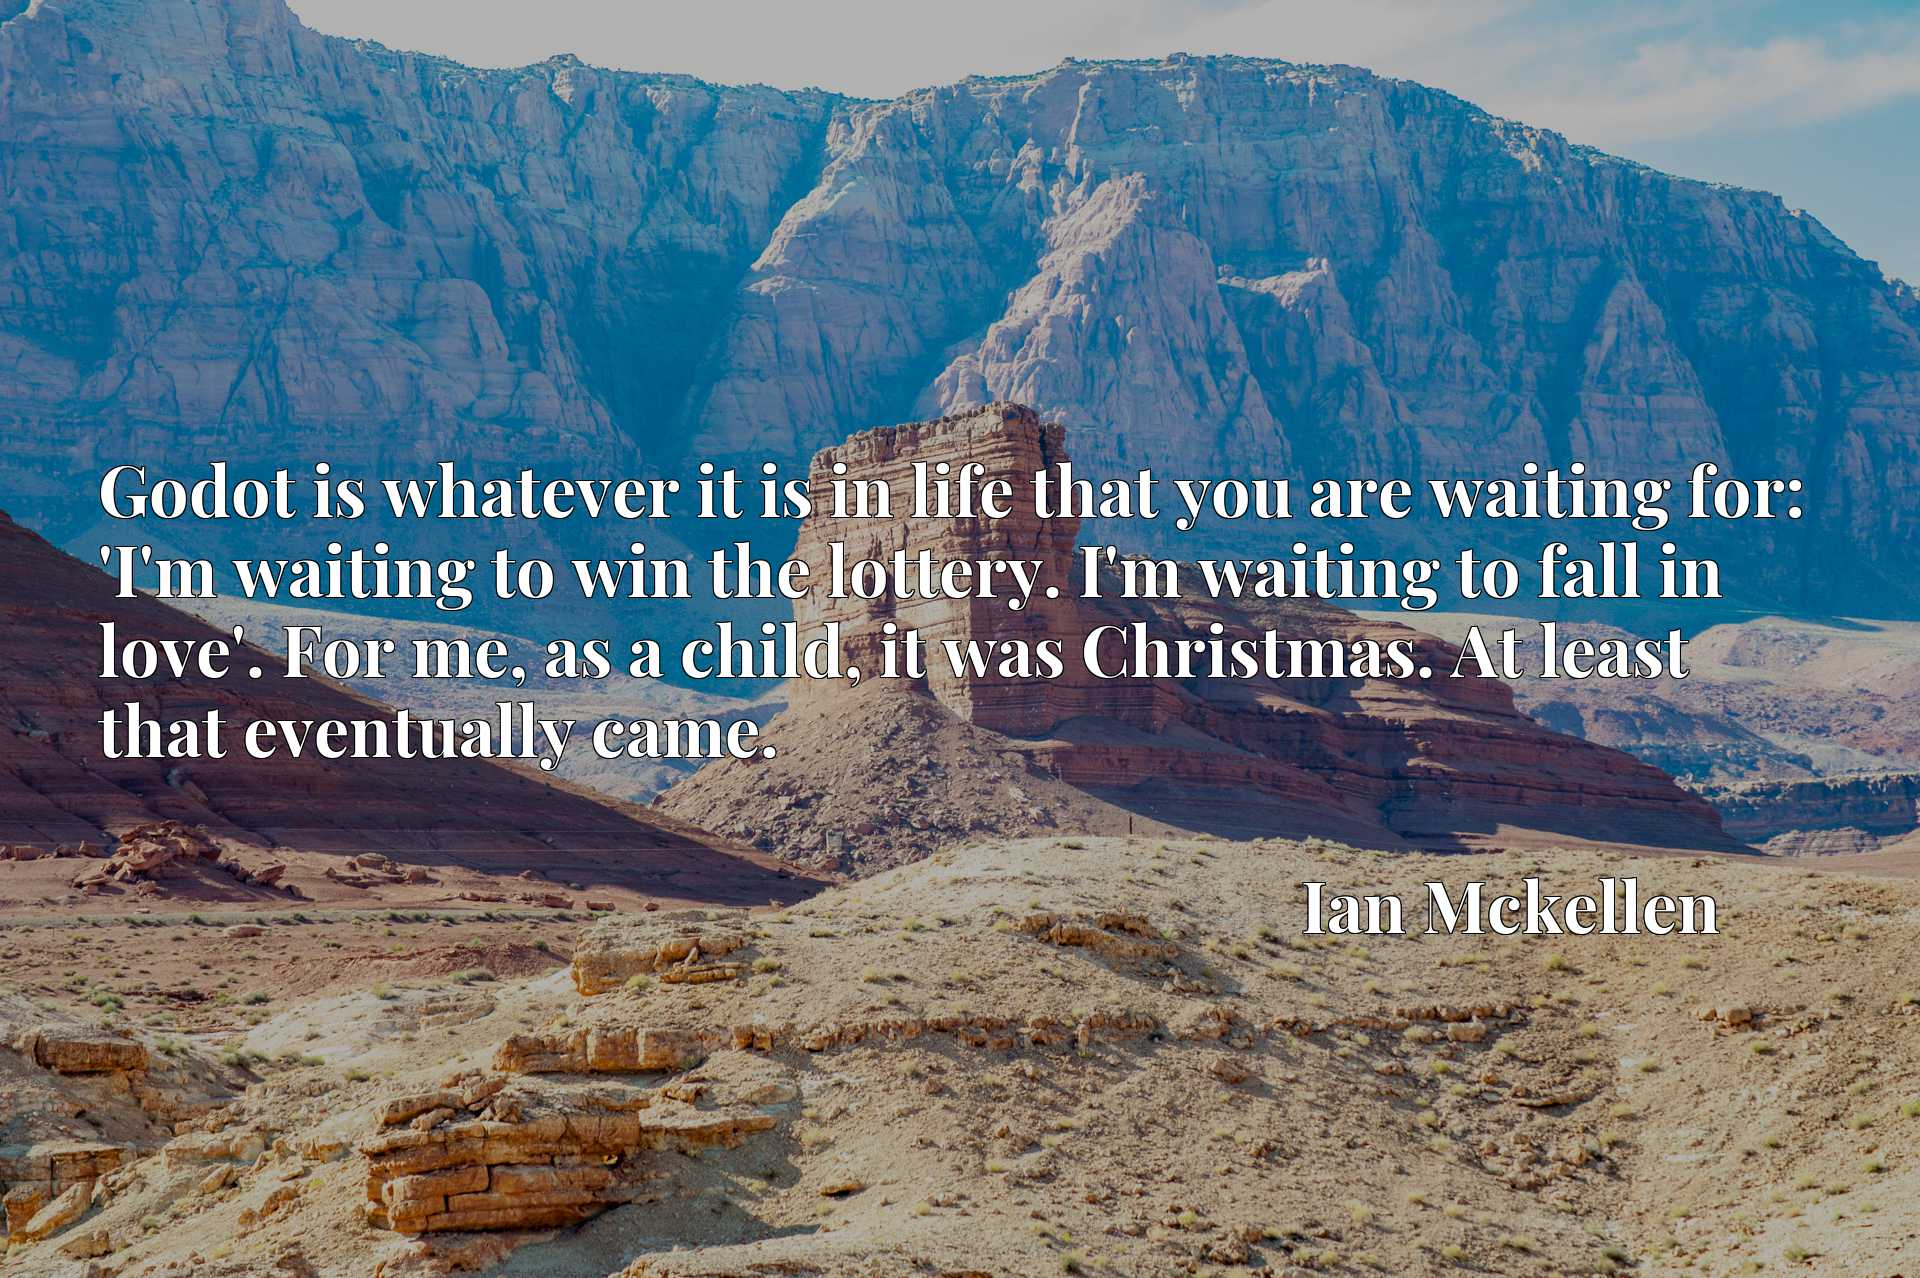 Godot is whatever it is in life that you are waiting for: 'I'm waiting to win the lottery. I'm waiting to fall in love'. For me, as a child, it was Christmas. At least that eventually came.